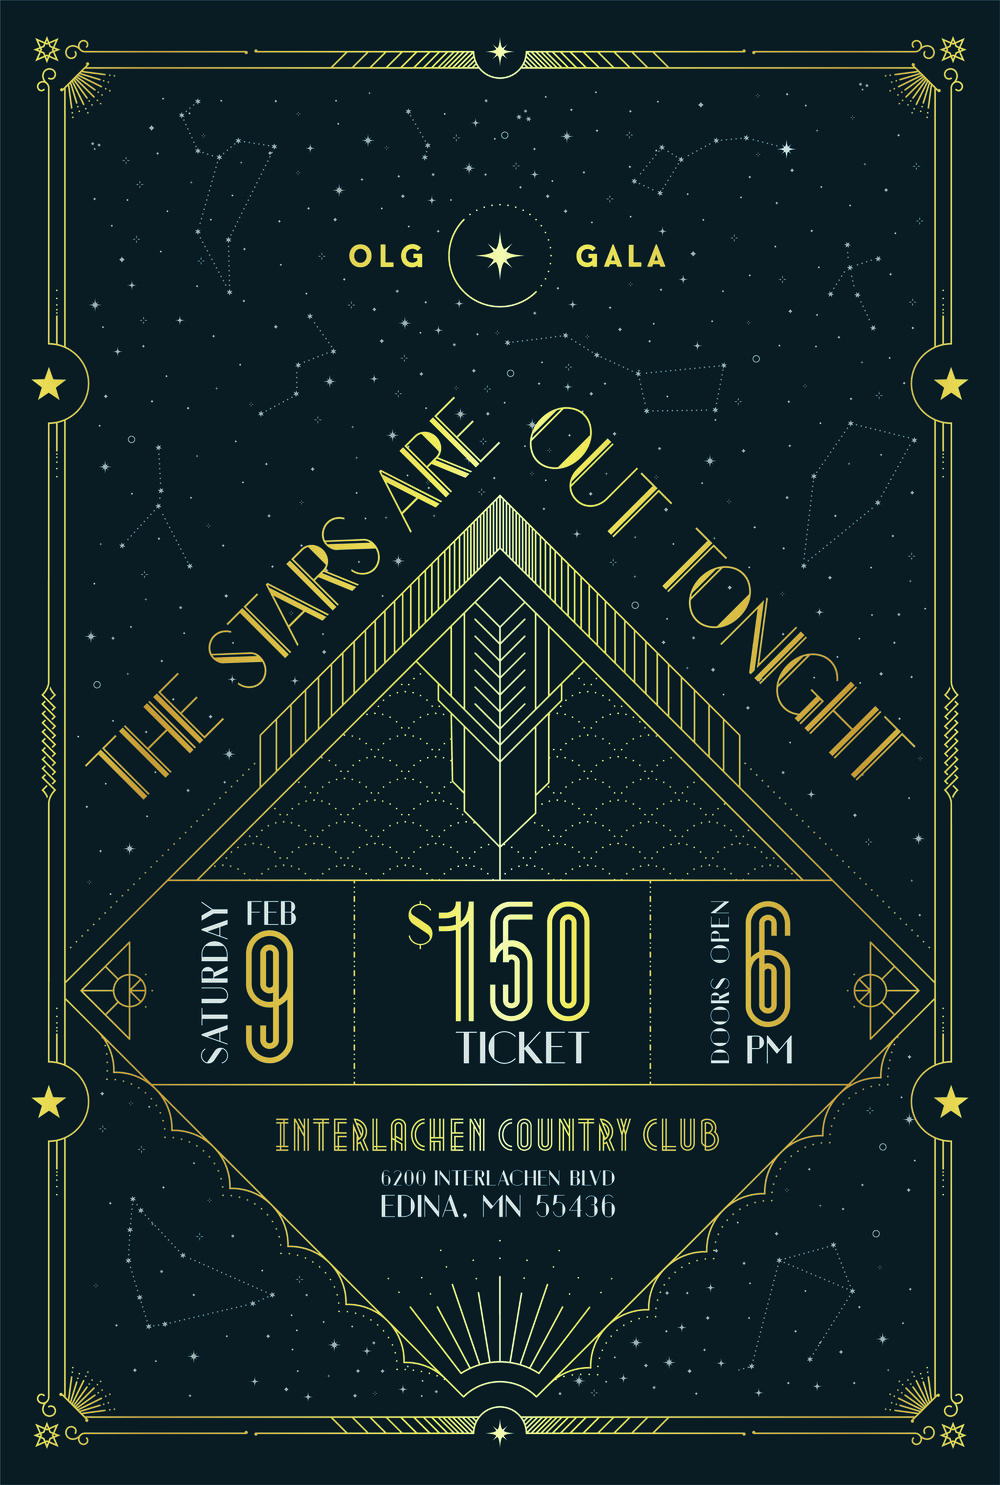 OLG-Gala-Updated Nov 2019.jpg